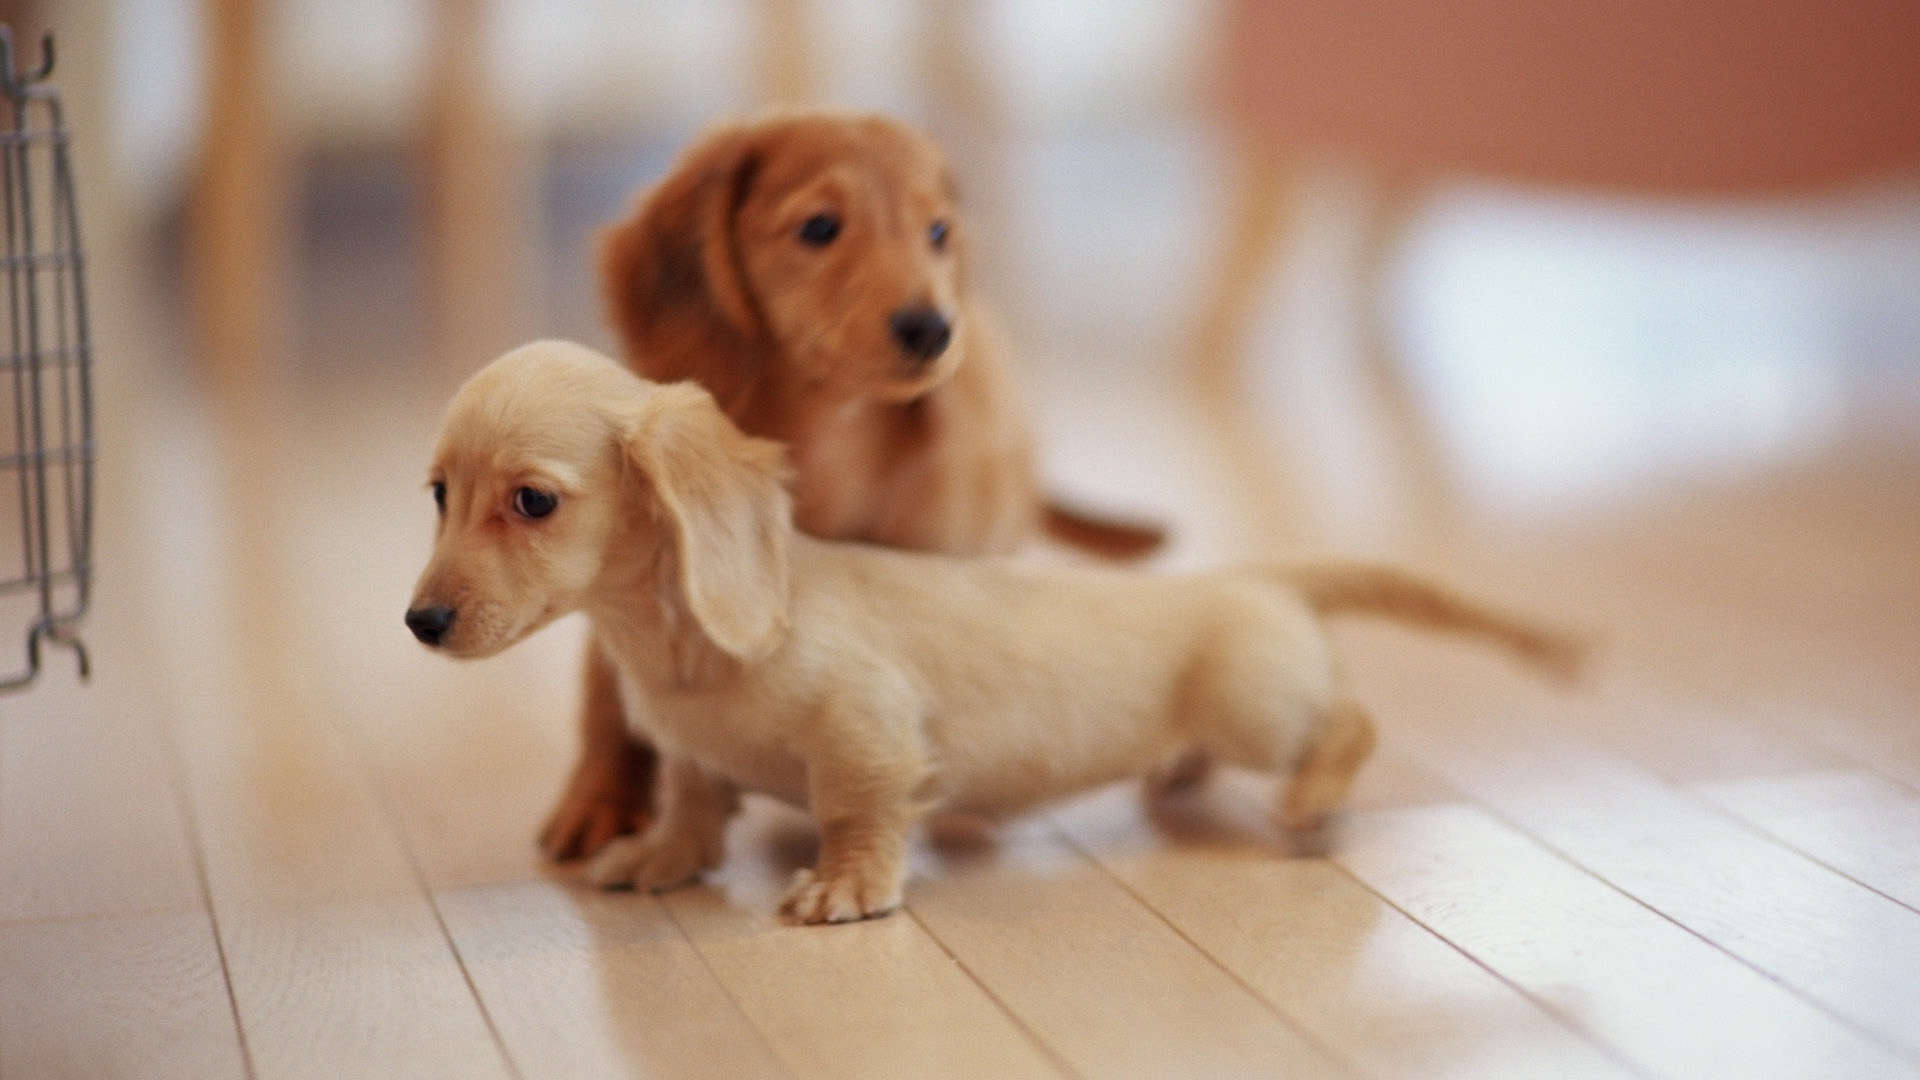 Wallpaper Cute HD Dachshund Puppies Wallpaper Upload at March 13 1920x1080